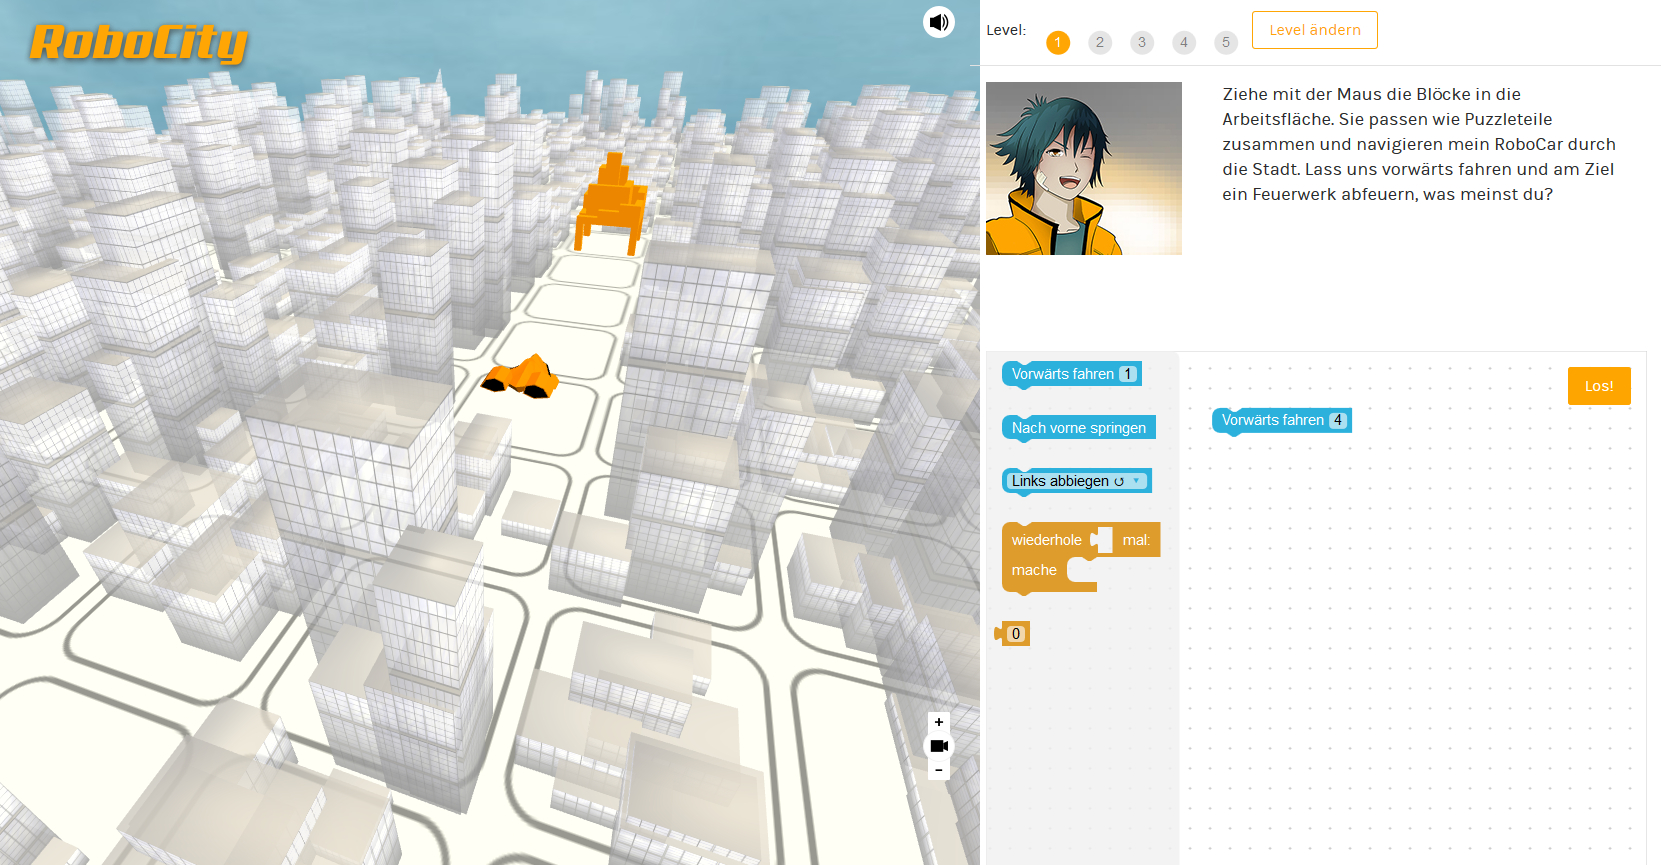 Screenshot of the game Robo City, showing the game and coding puzzle blocks